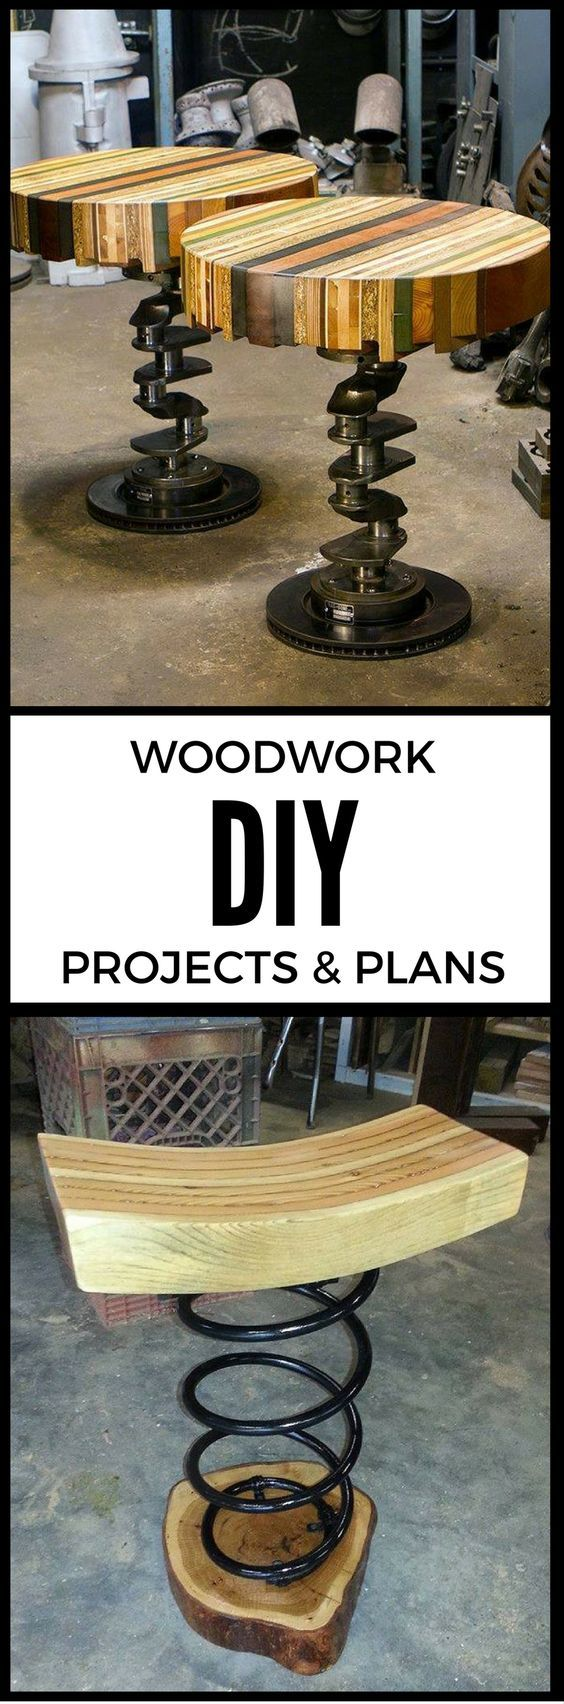 Do It Yourself Home Design: 16,000 DIY Woodworking Projects -Do It Yourself DIY Garage